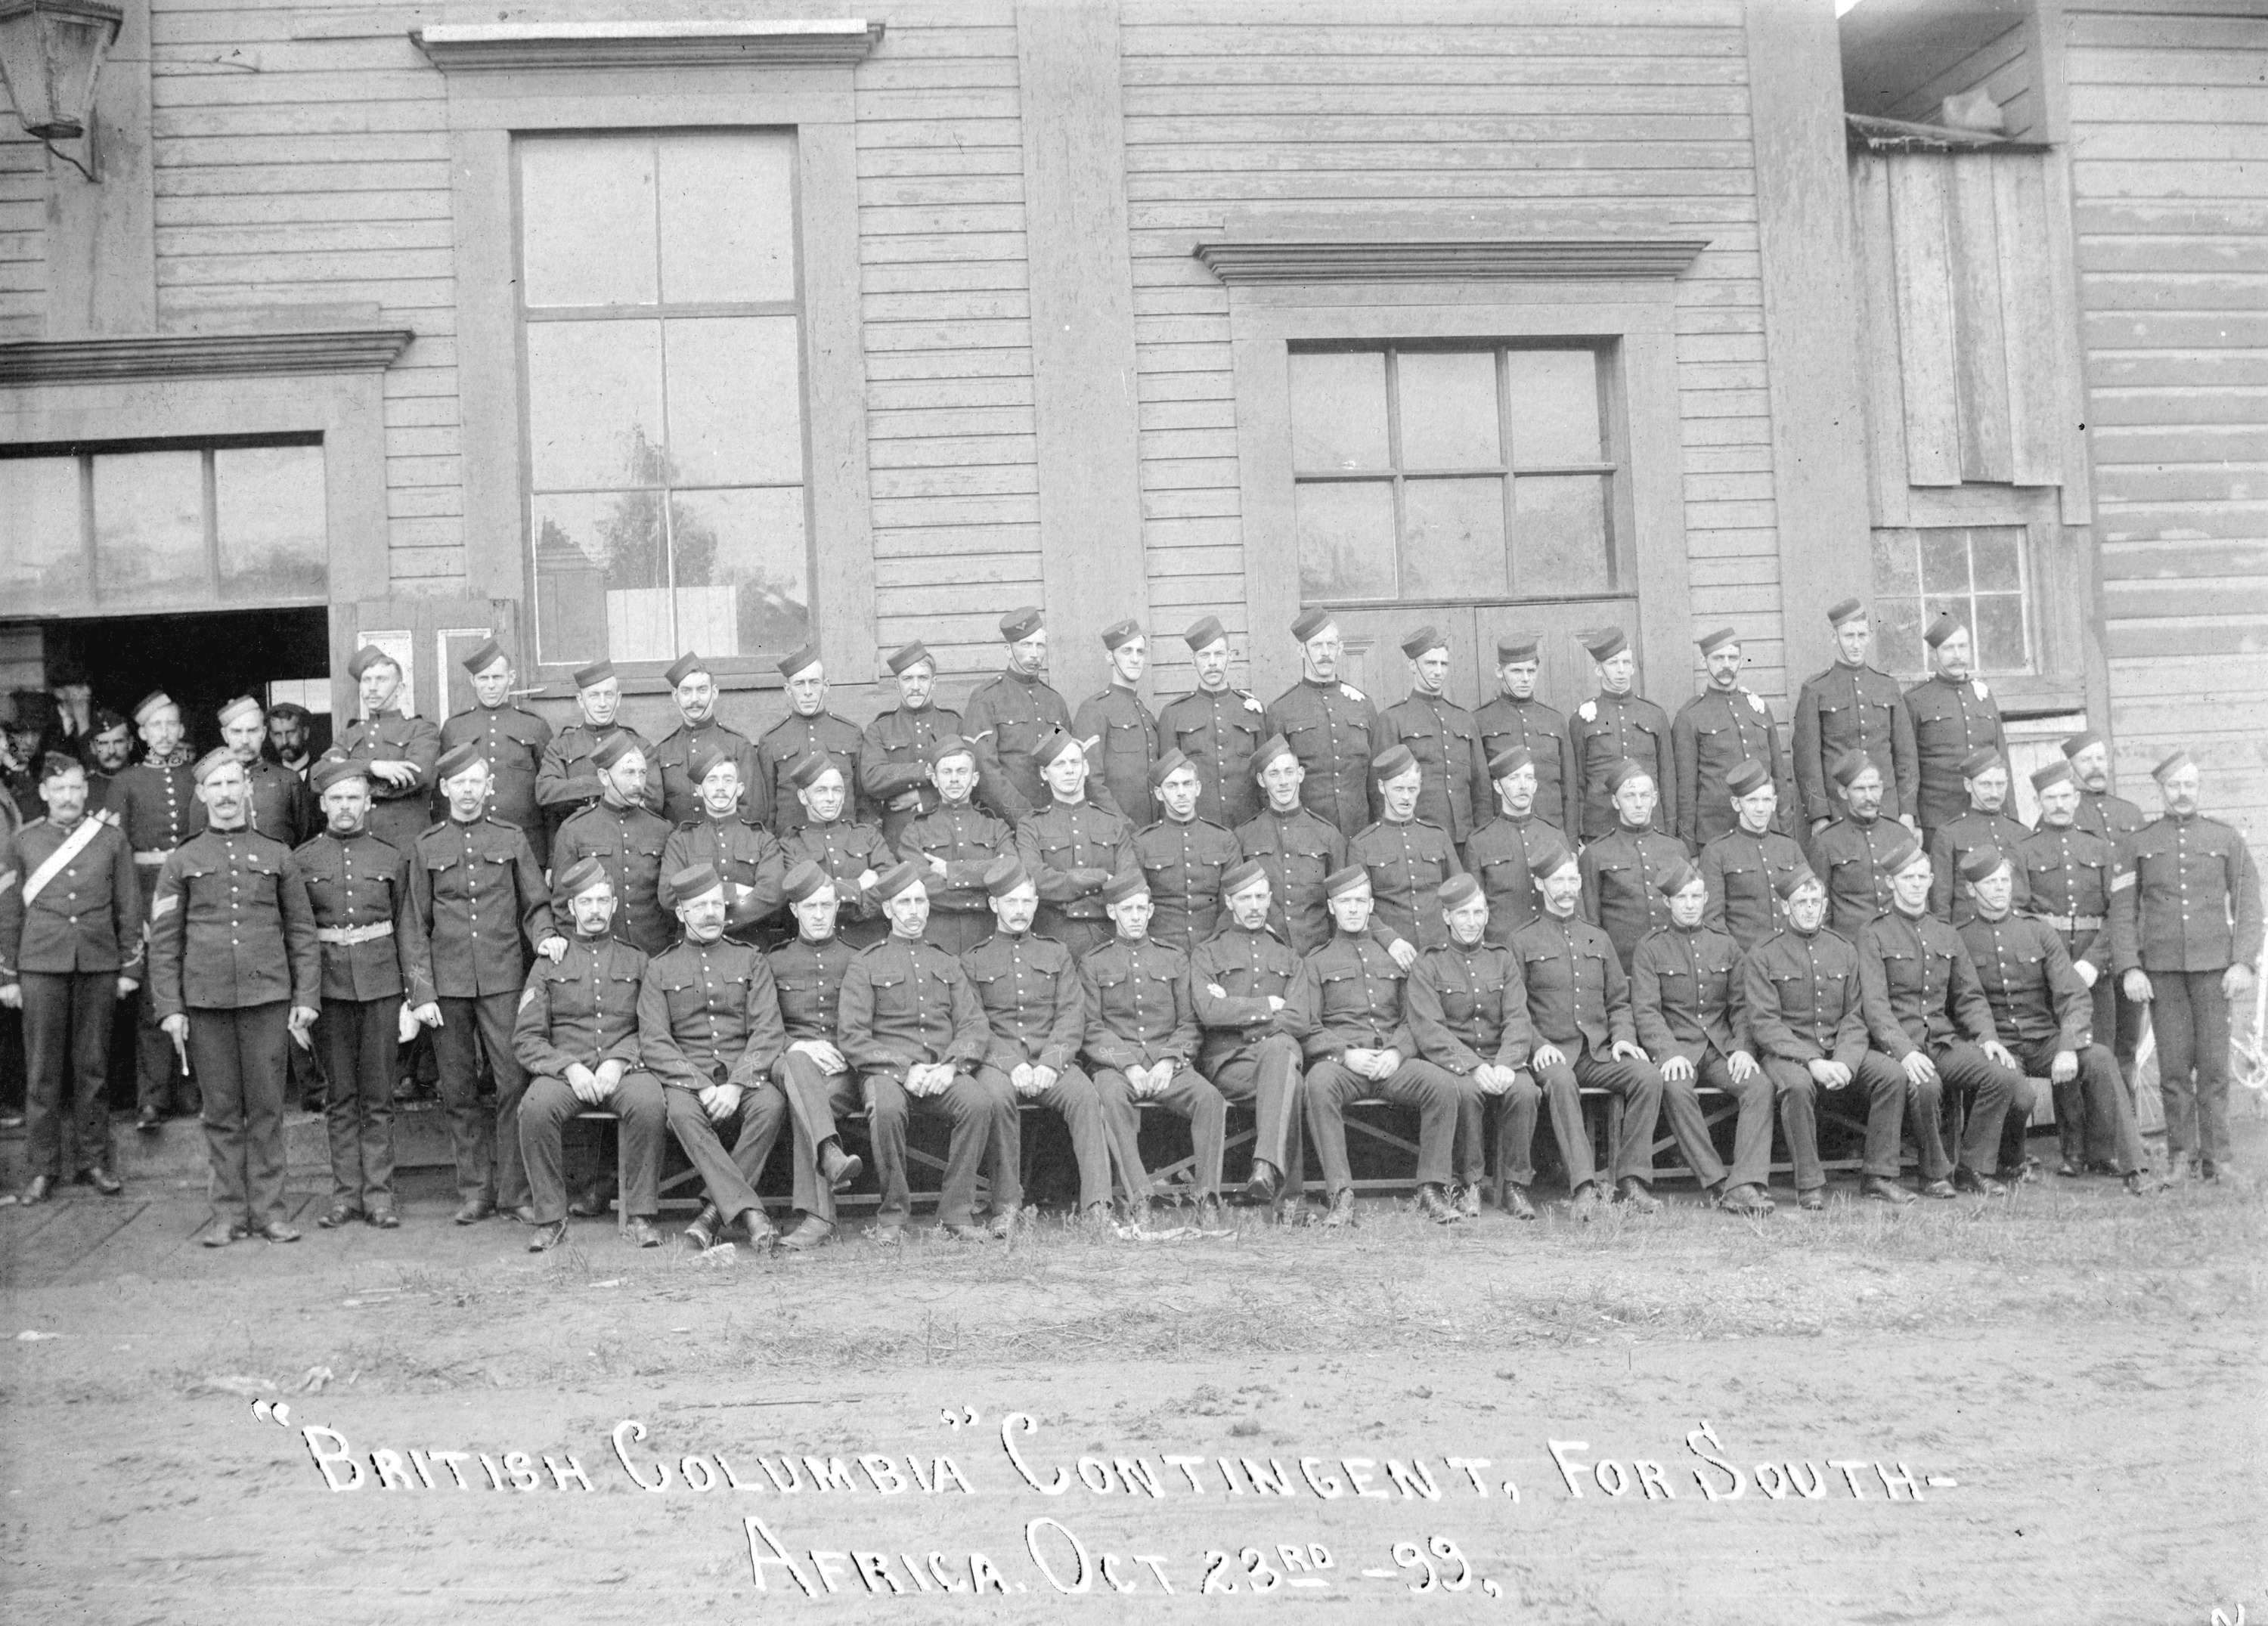 """British Columbia"" Contingent for South Africa Oct. 23, 1899  D871768c-d438-4f9b-8701-4906616a0fa8-A41404"